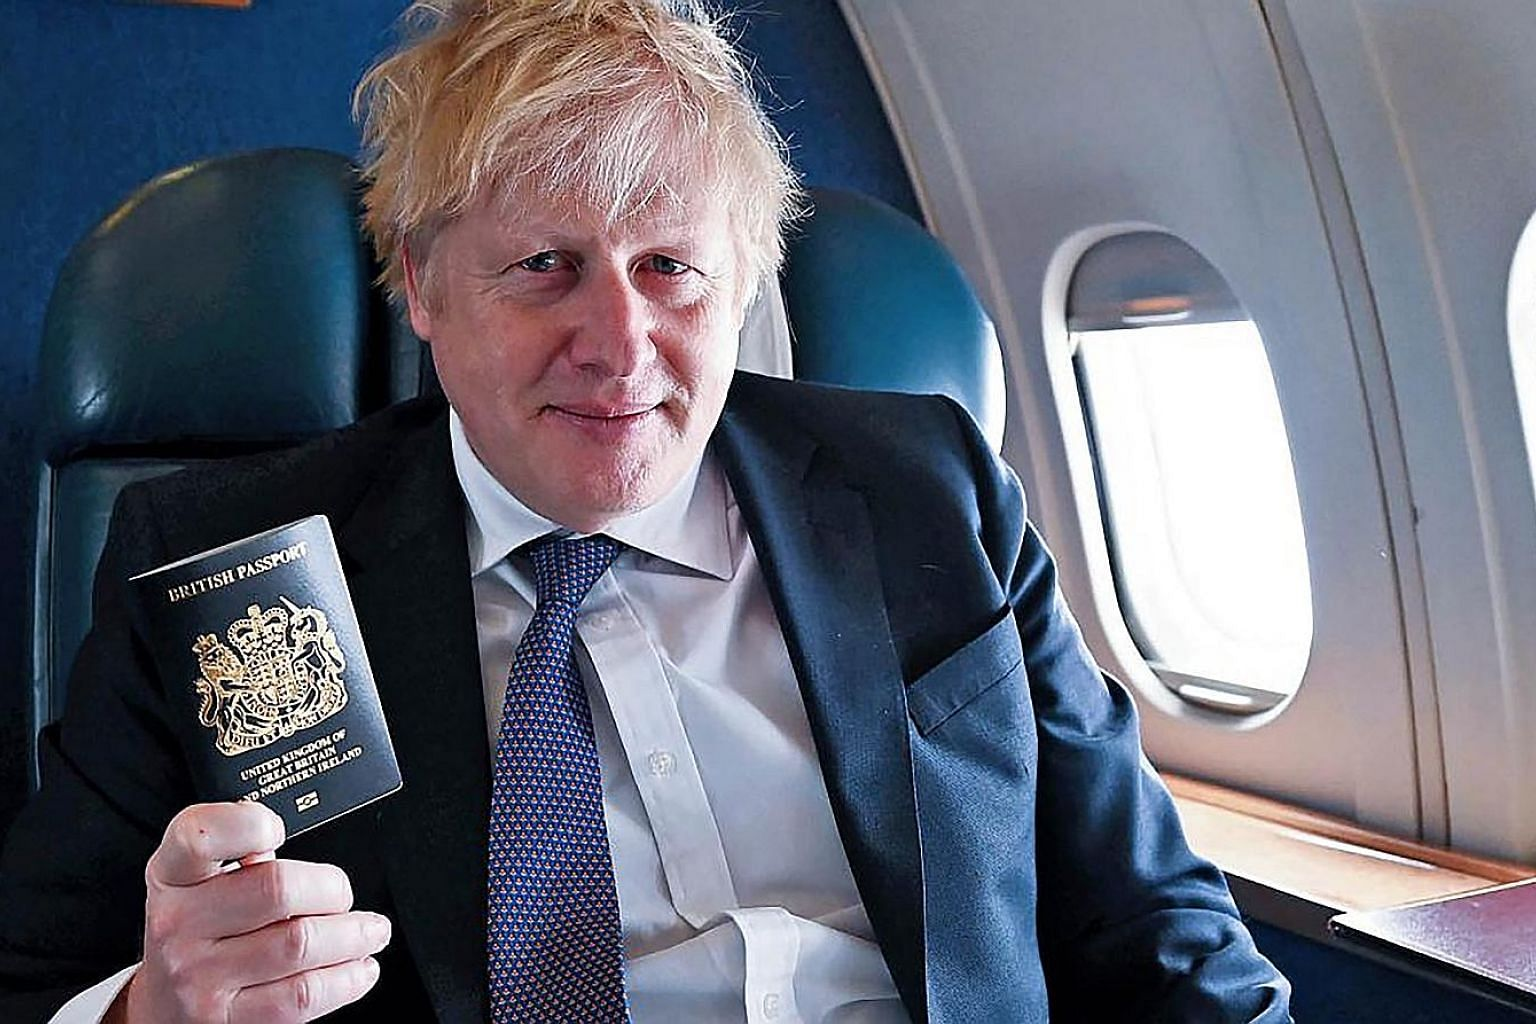 Prime Minister Boris Johnson with the new British passport. The new blue passports, being made in Poland, will replace the burgundy passports introduced in 1988. PHOTO: 10 DOWNING STREET